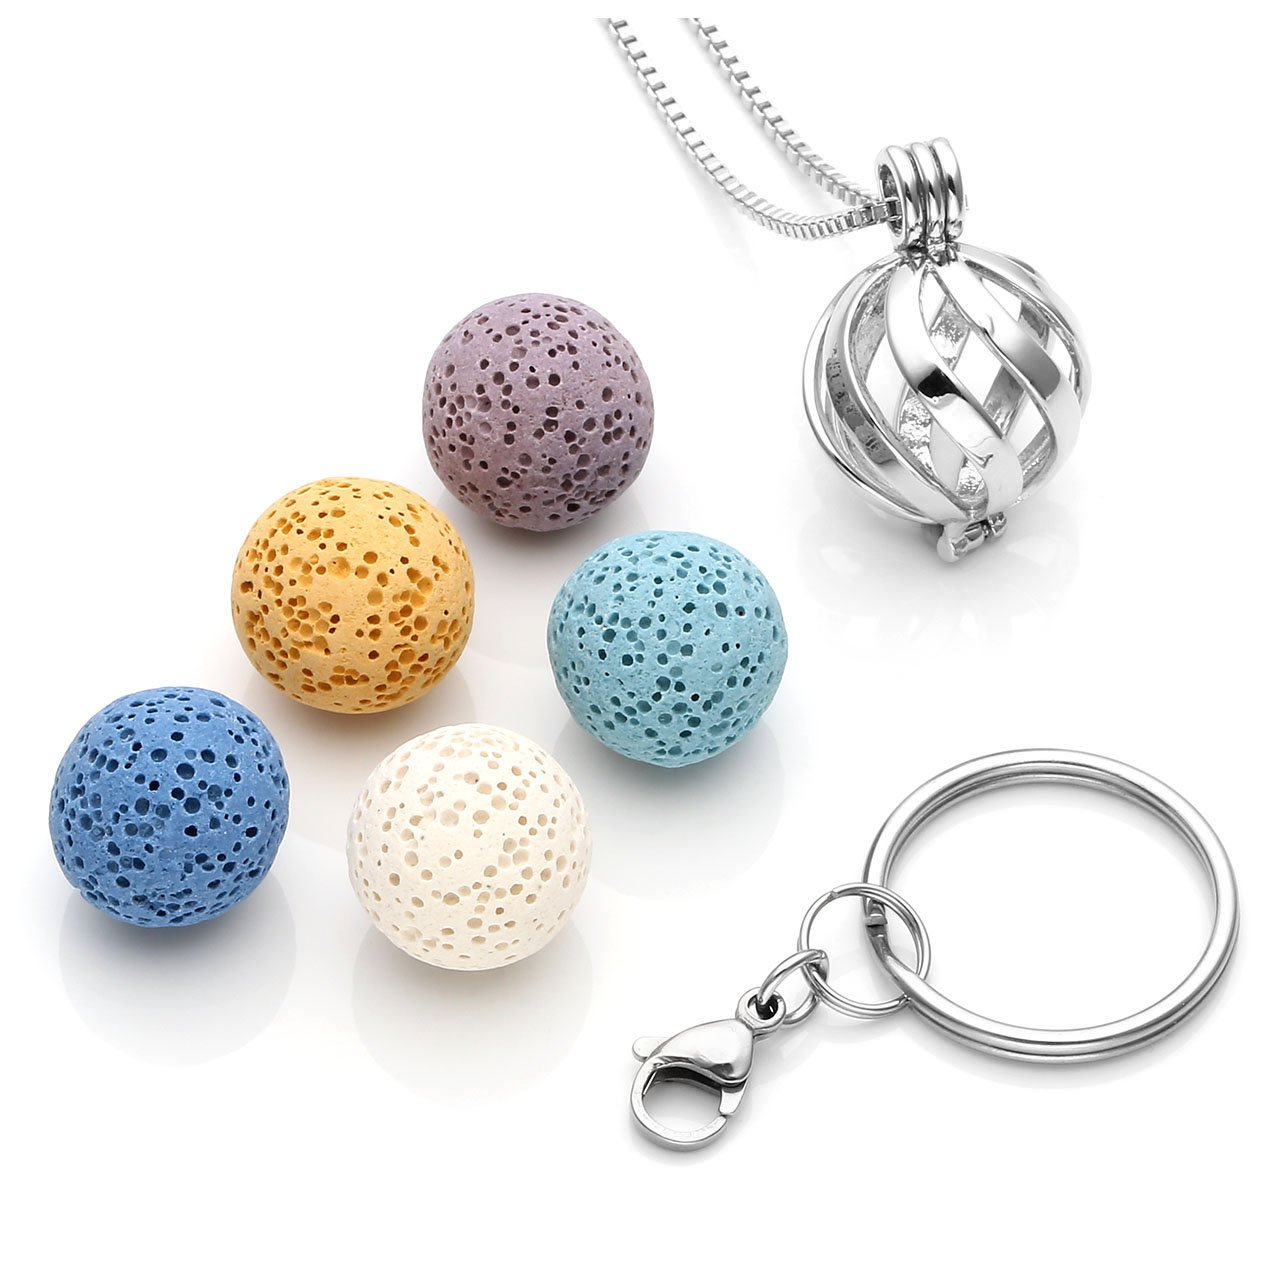 Top Plaza Aromatherapy Essential Oil Diffuser Lava Rock Stone Locket Pendant Necklace Keychian Fashion Unique Silver Stainless Steel Jewelry for Womens Men(Twisted Ball)